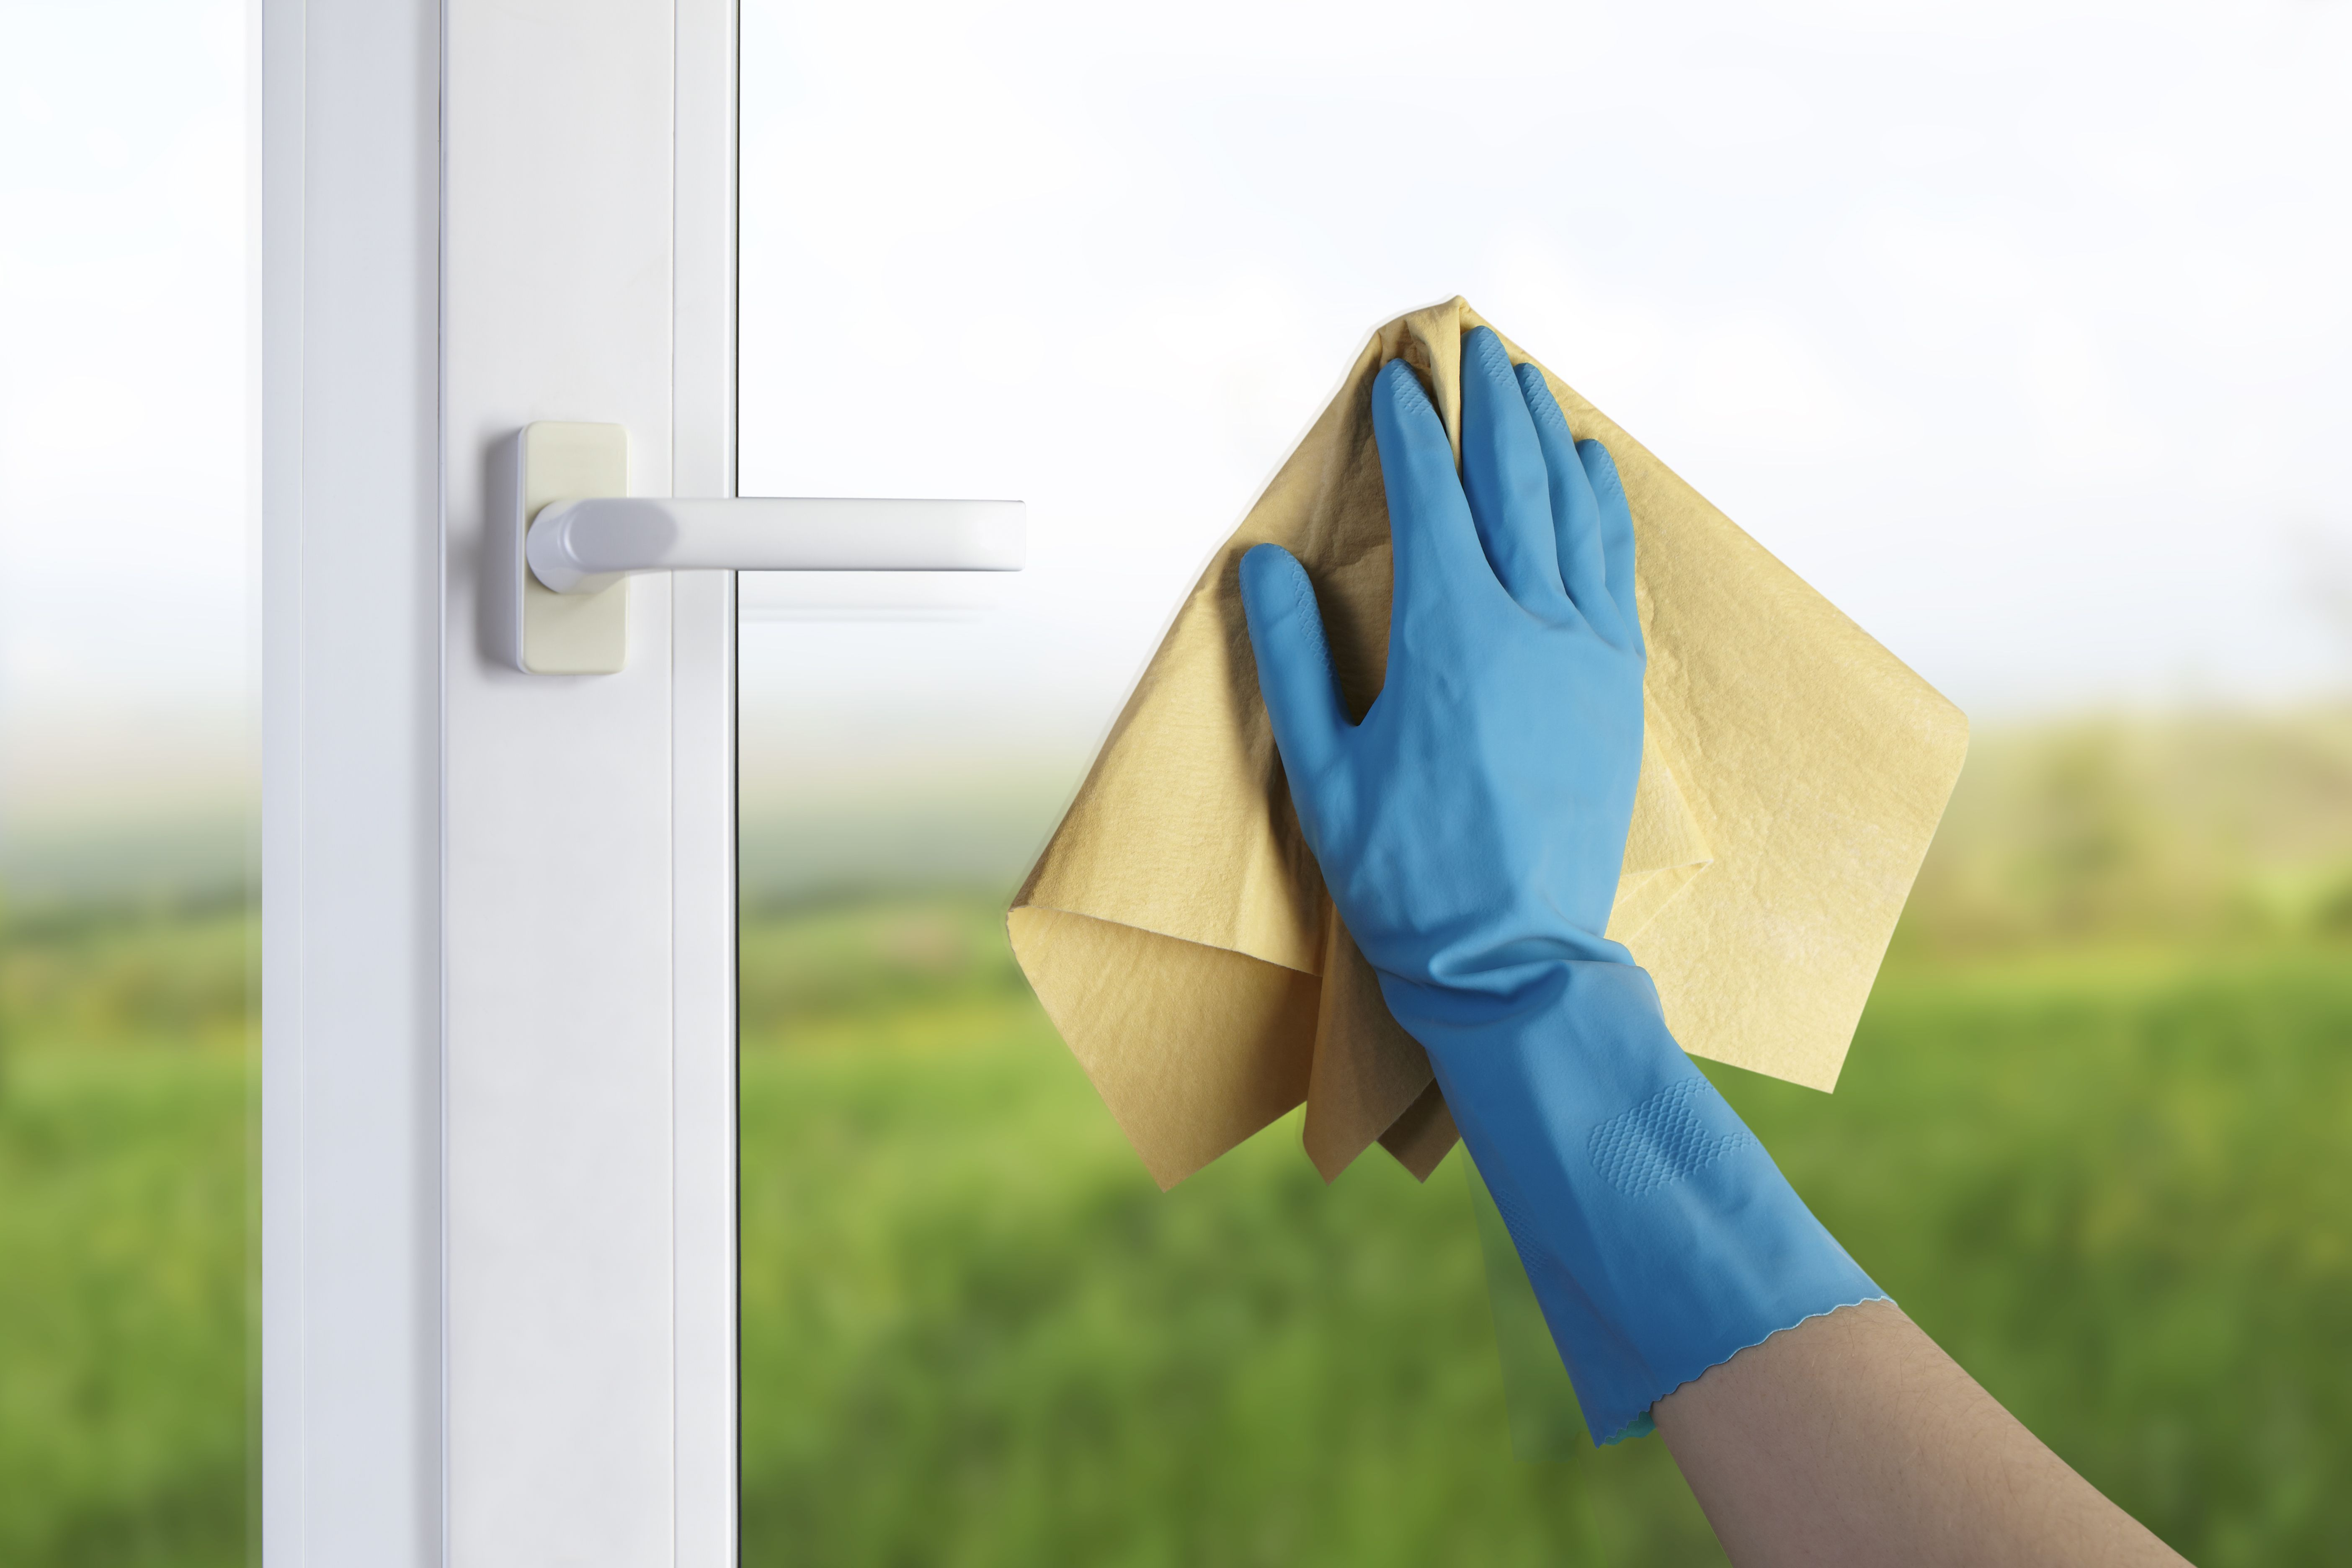 Wash Windows for Spring Cleaning